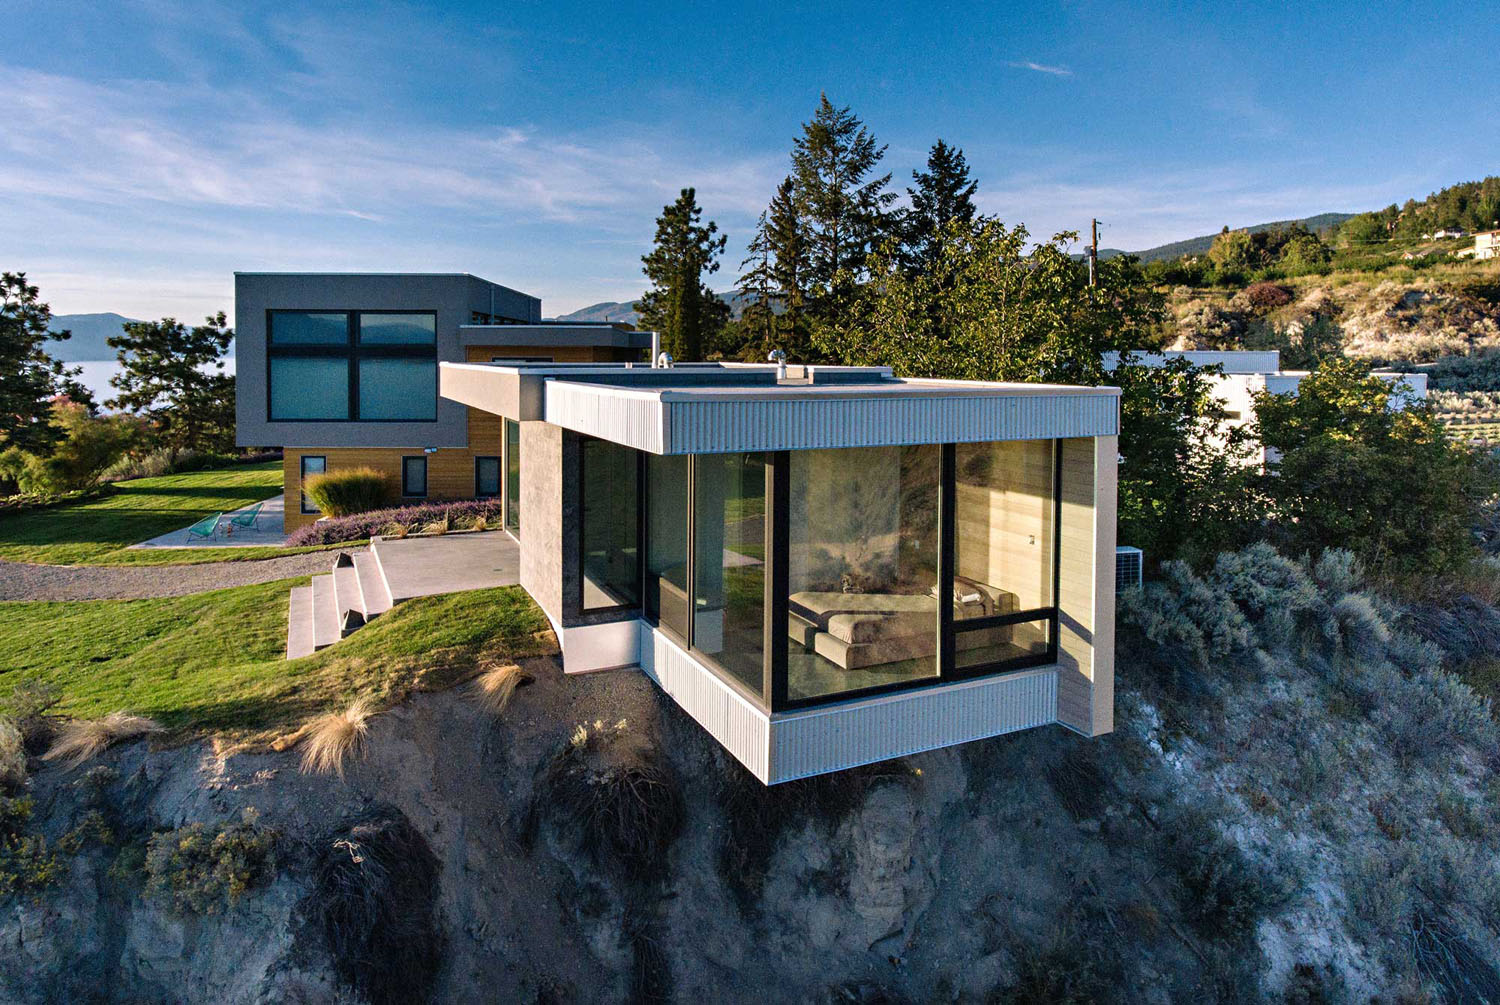 Minimalist oceanview home in israel idesignarch interior design - Living On The Edge A Glass And Concrete Cantilevered Studio In The Okanagan